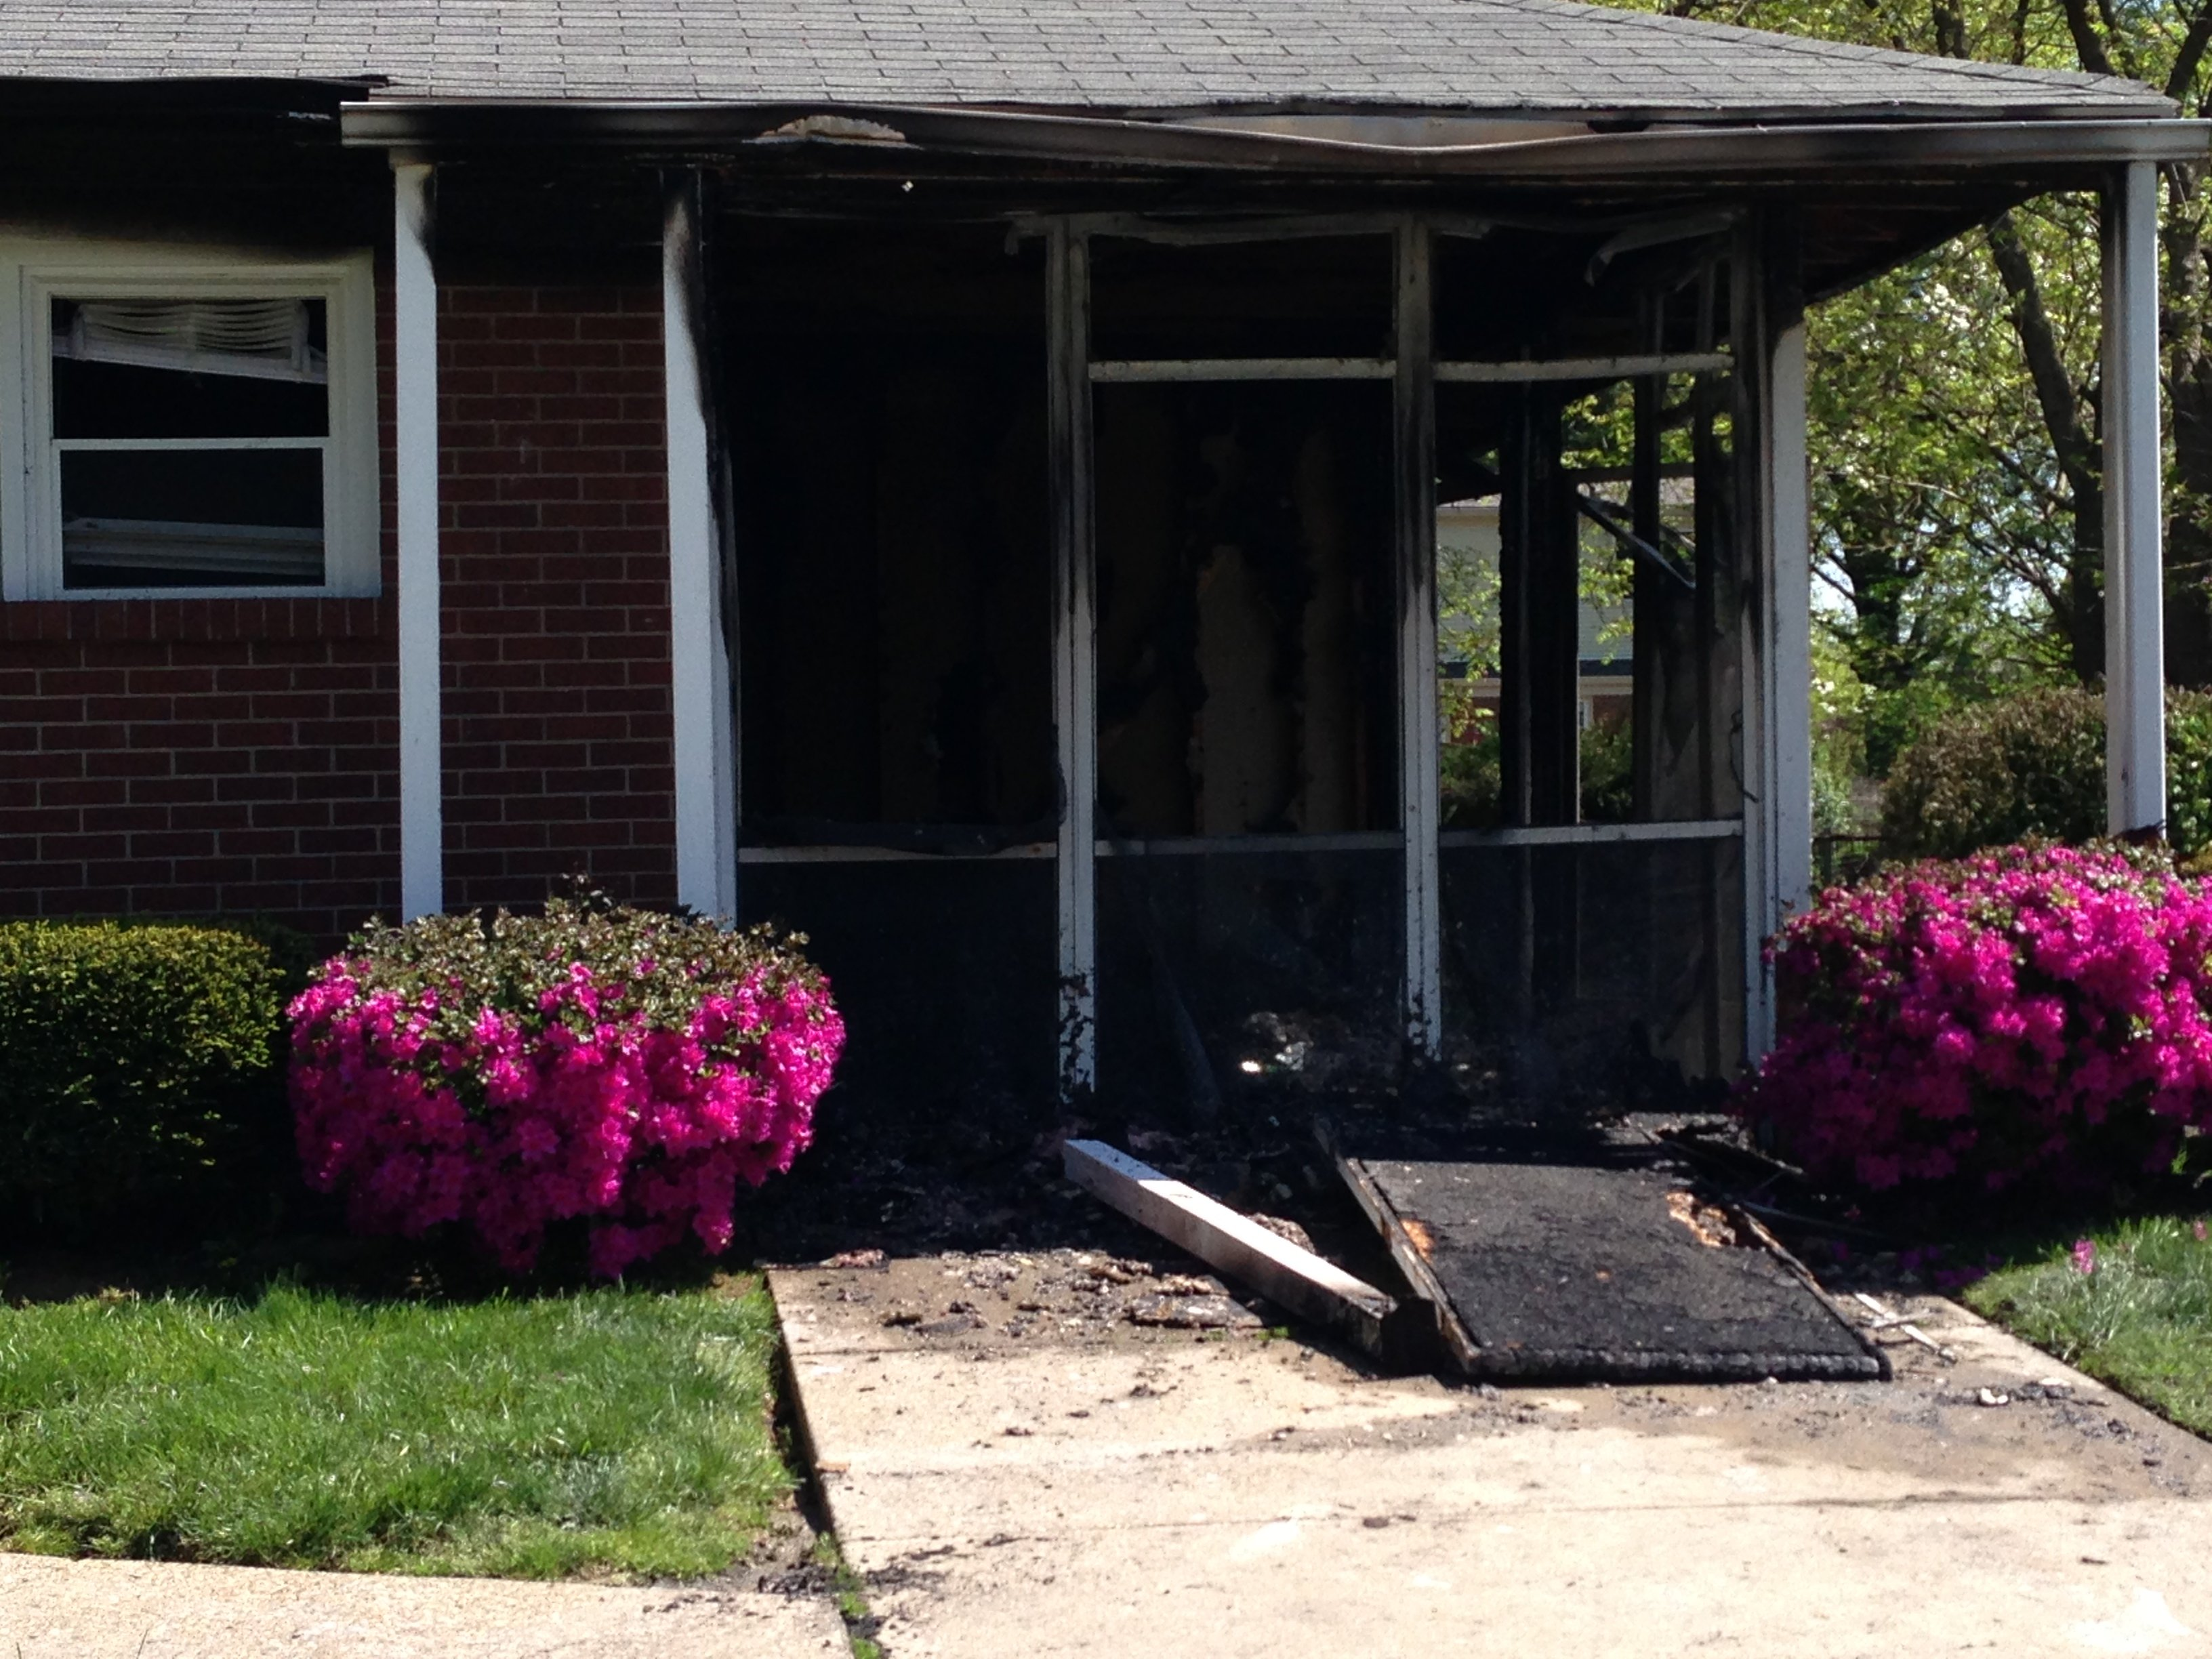 The enclosed sun porch was completely destroyed in the arson fire